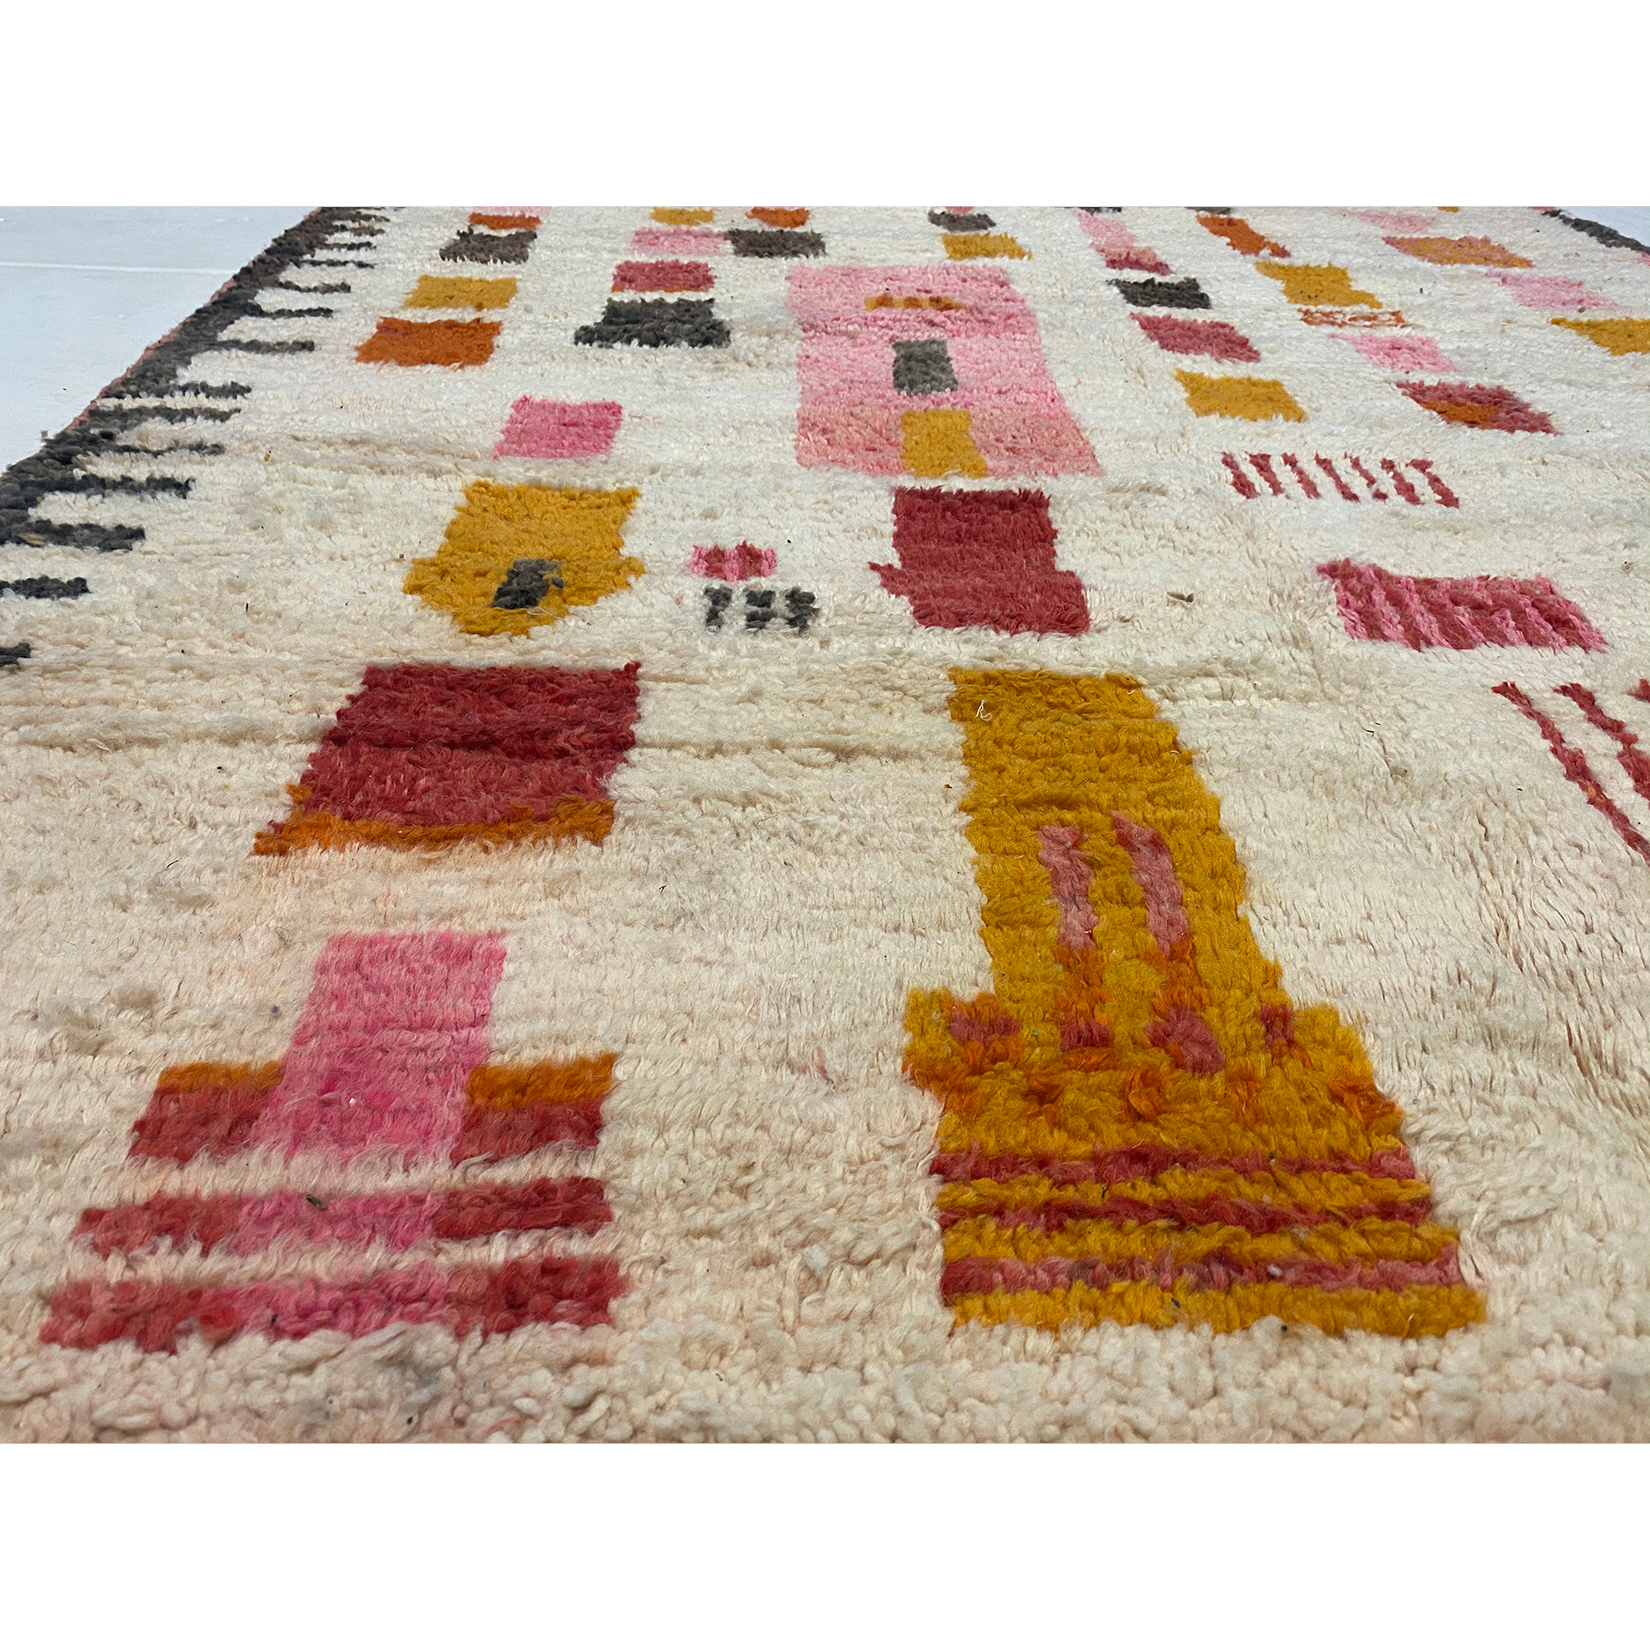 Detail of Modern Berber rug with pink and yellow designs